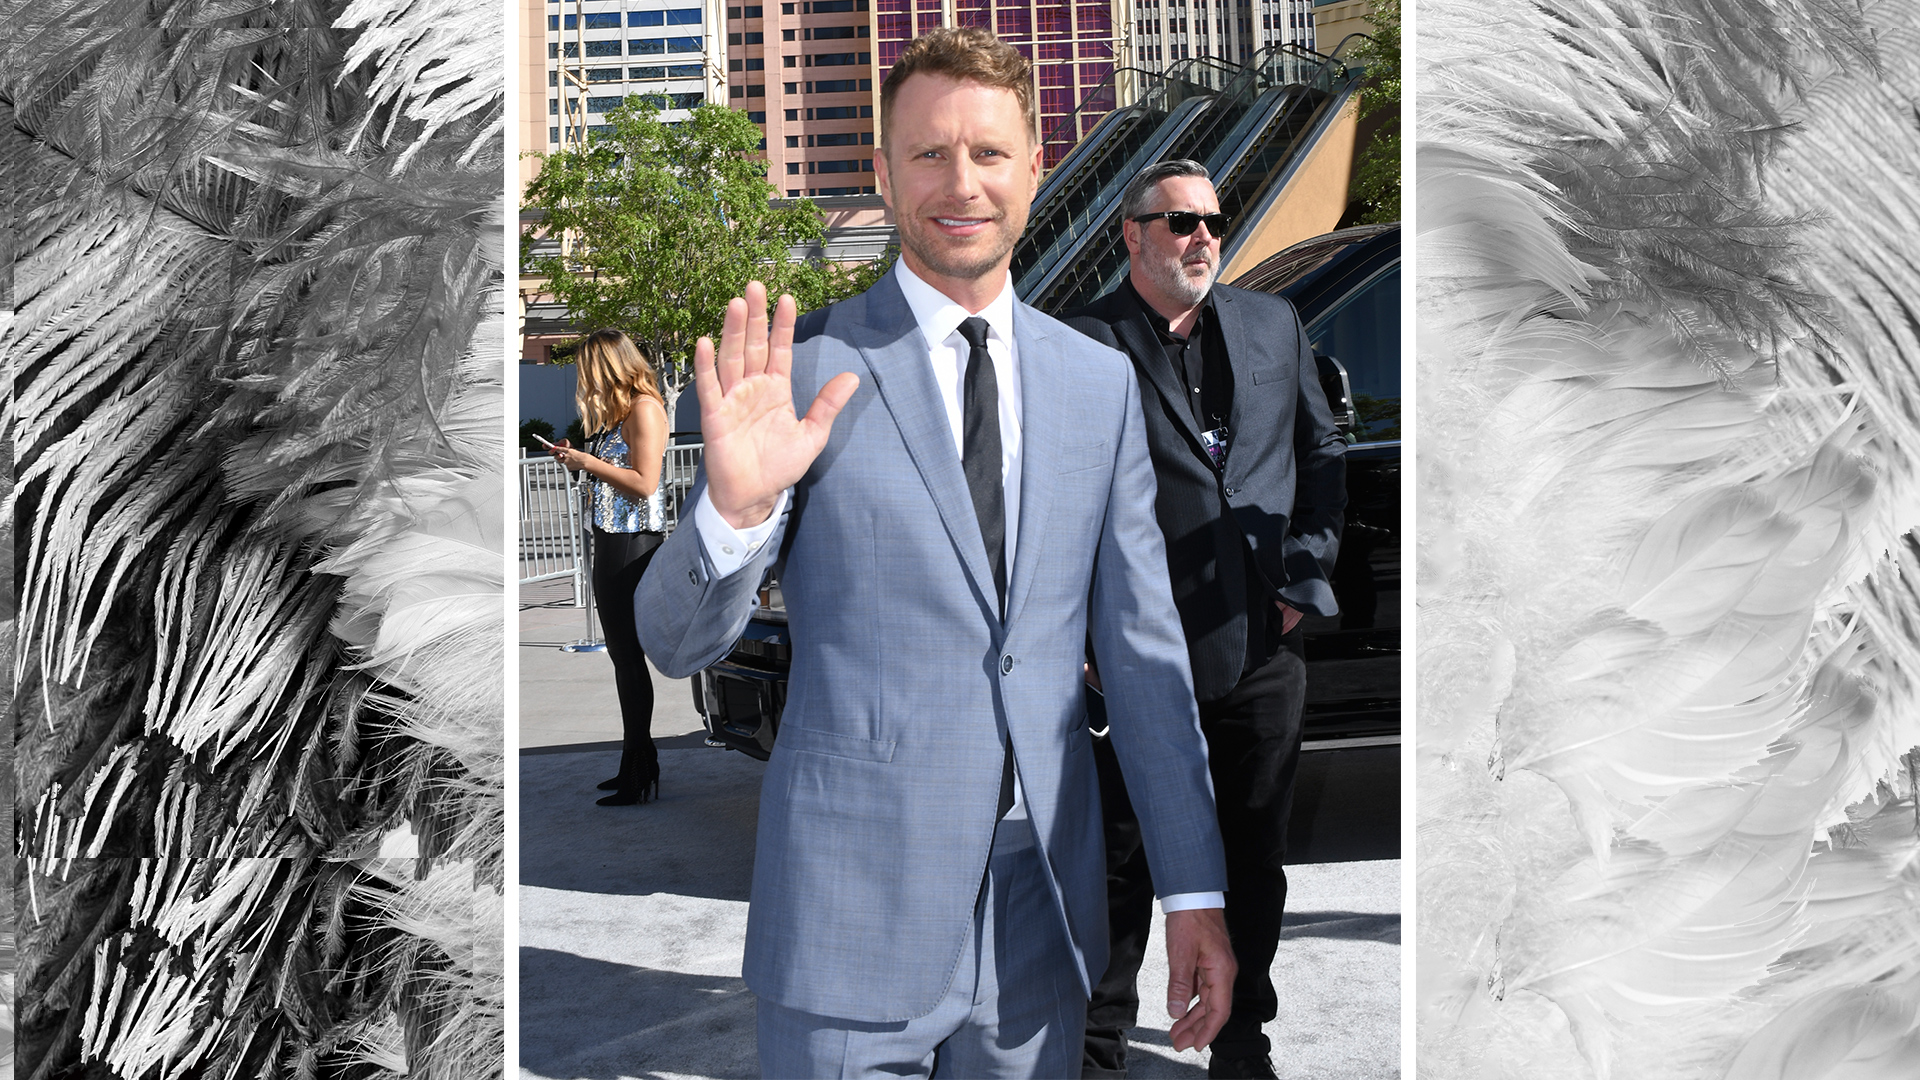 52nd ACM Awards co-host Dierks Bentley waves to the crowd before his big night begins.